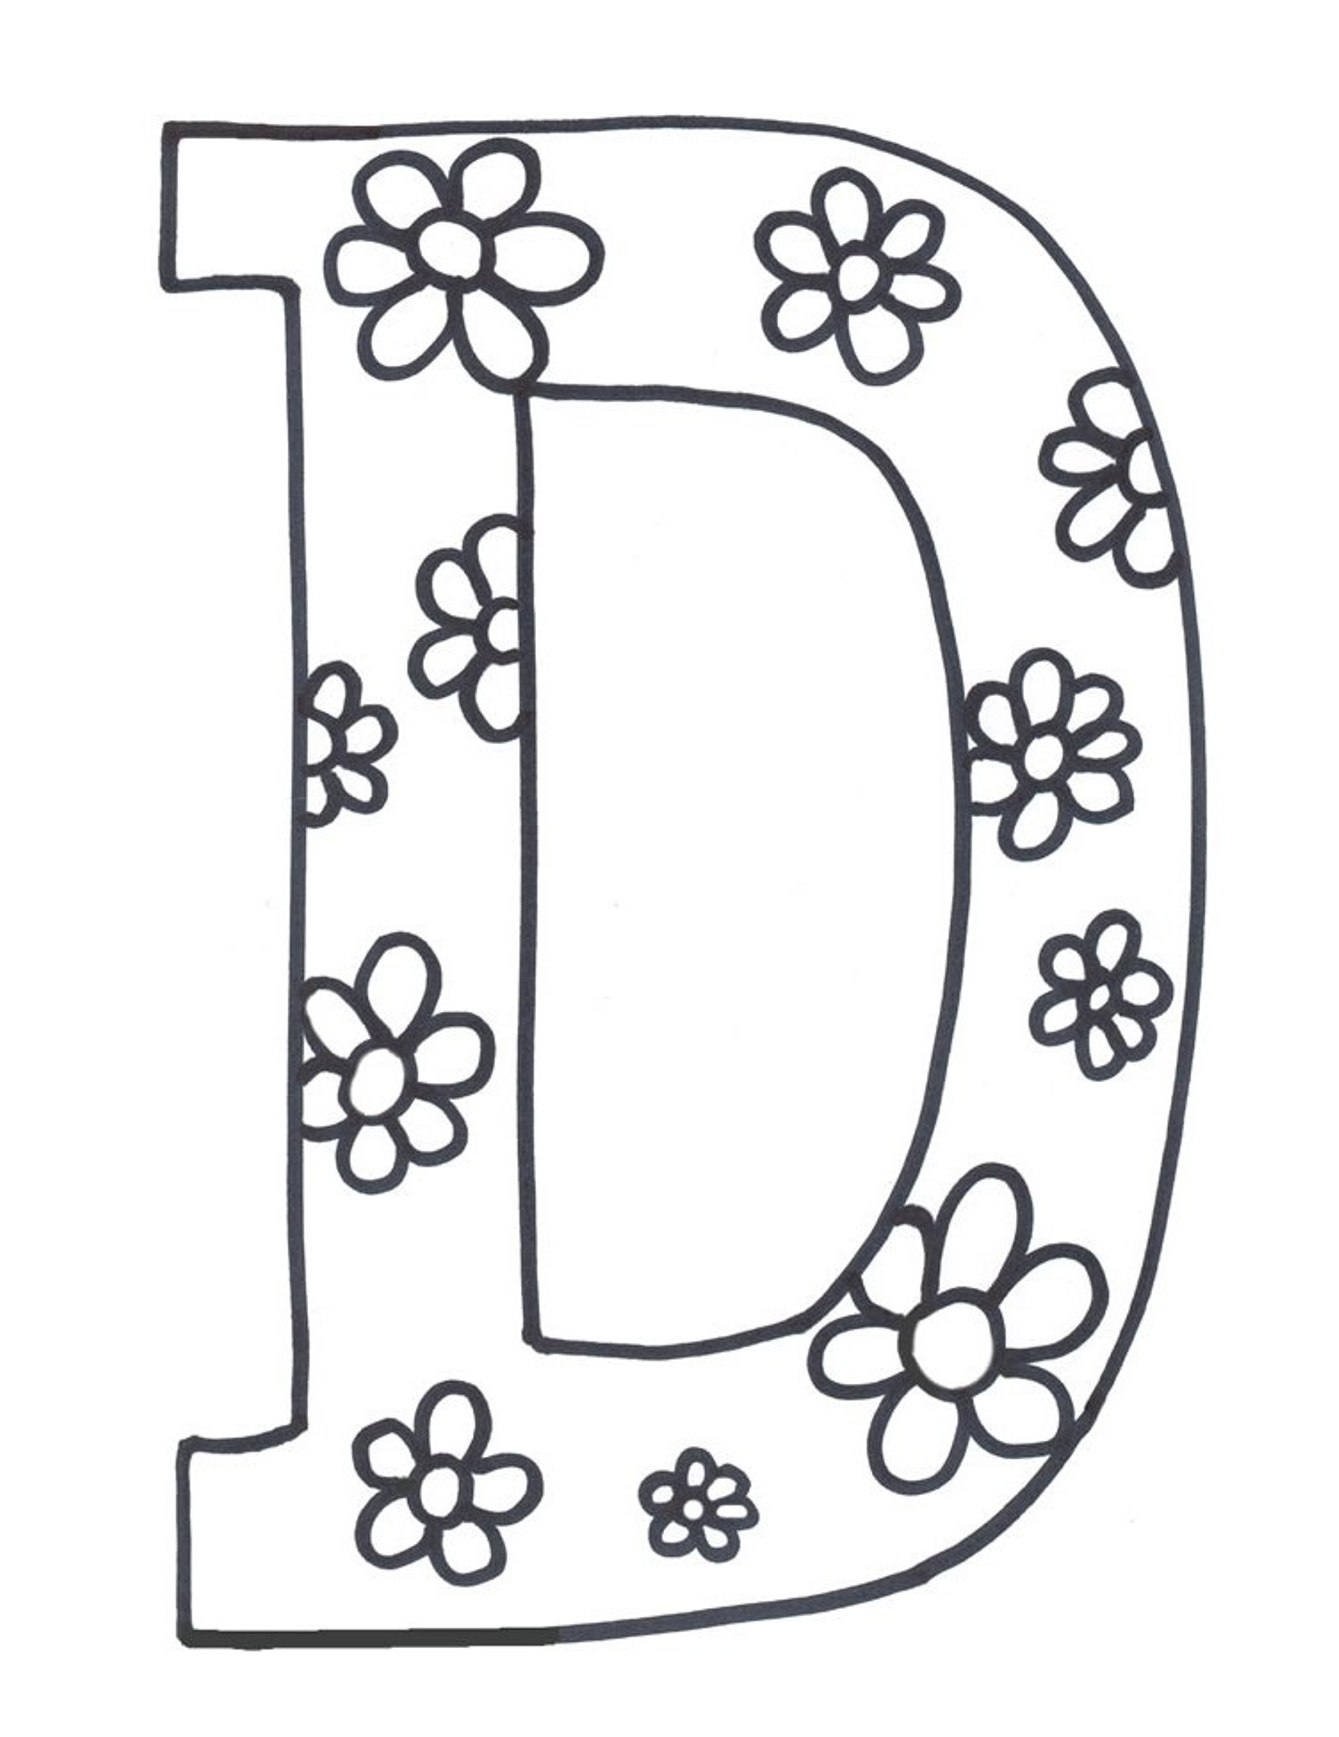 Letter D Coloring Pages To Download And Print For Free